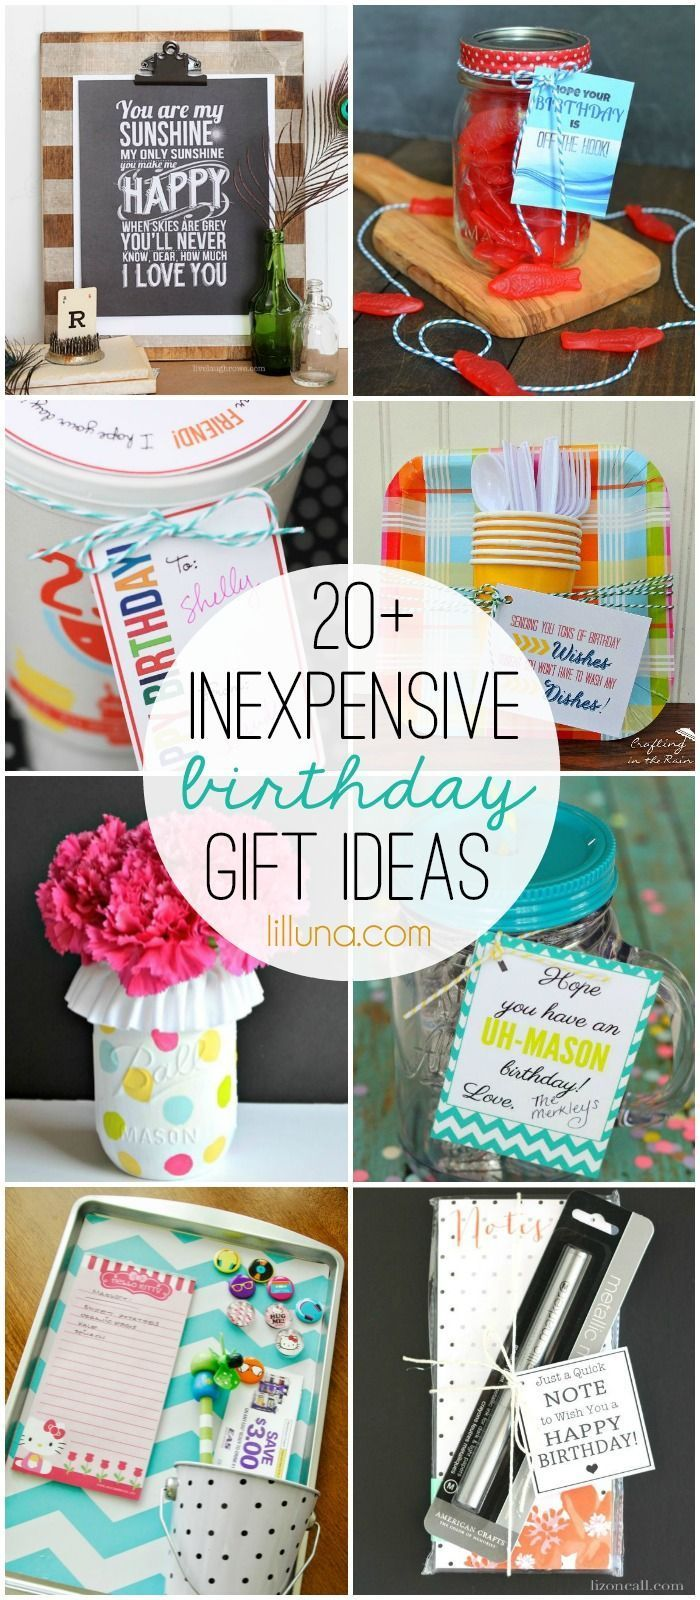 20+ Inexpensive birthday gift ideas - must check out all these good ideas for easy and inexpensive gifts! on {  }: